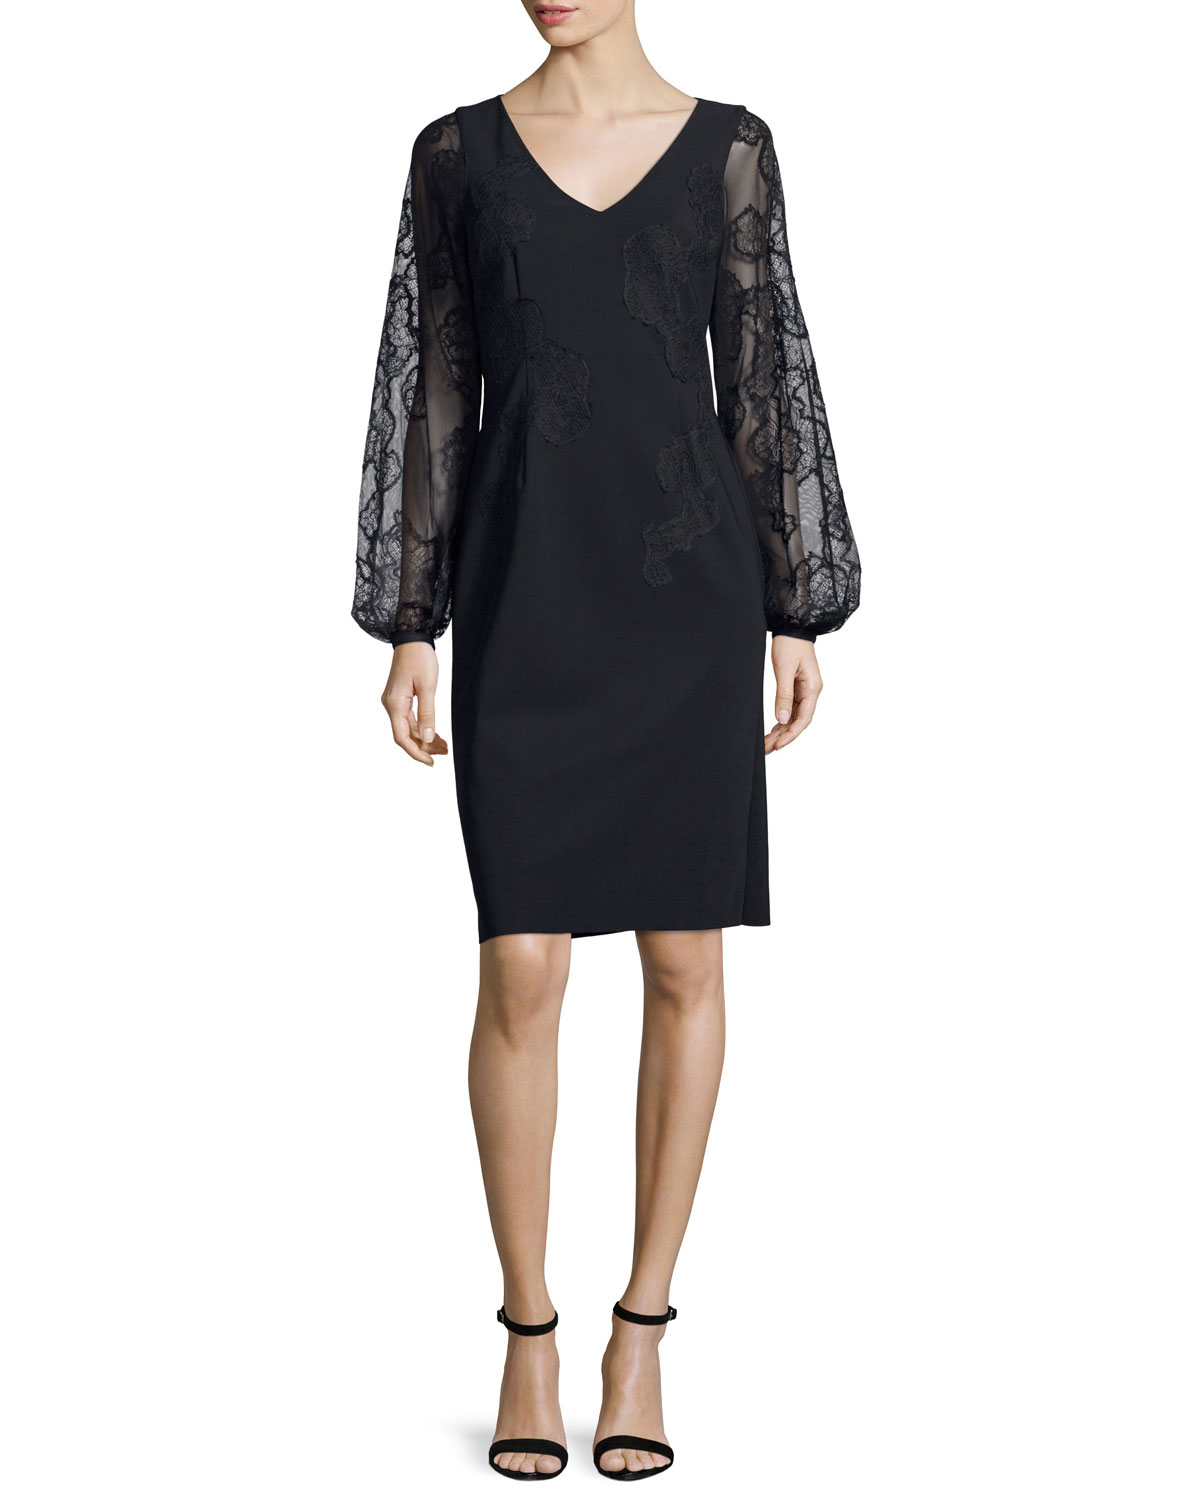 Long-Sleeve Embroidered Cocktail Dress, Black